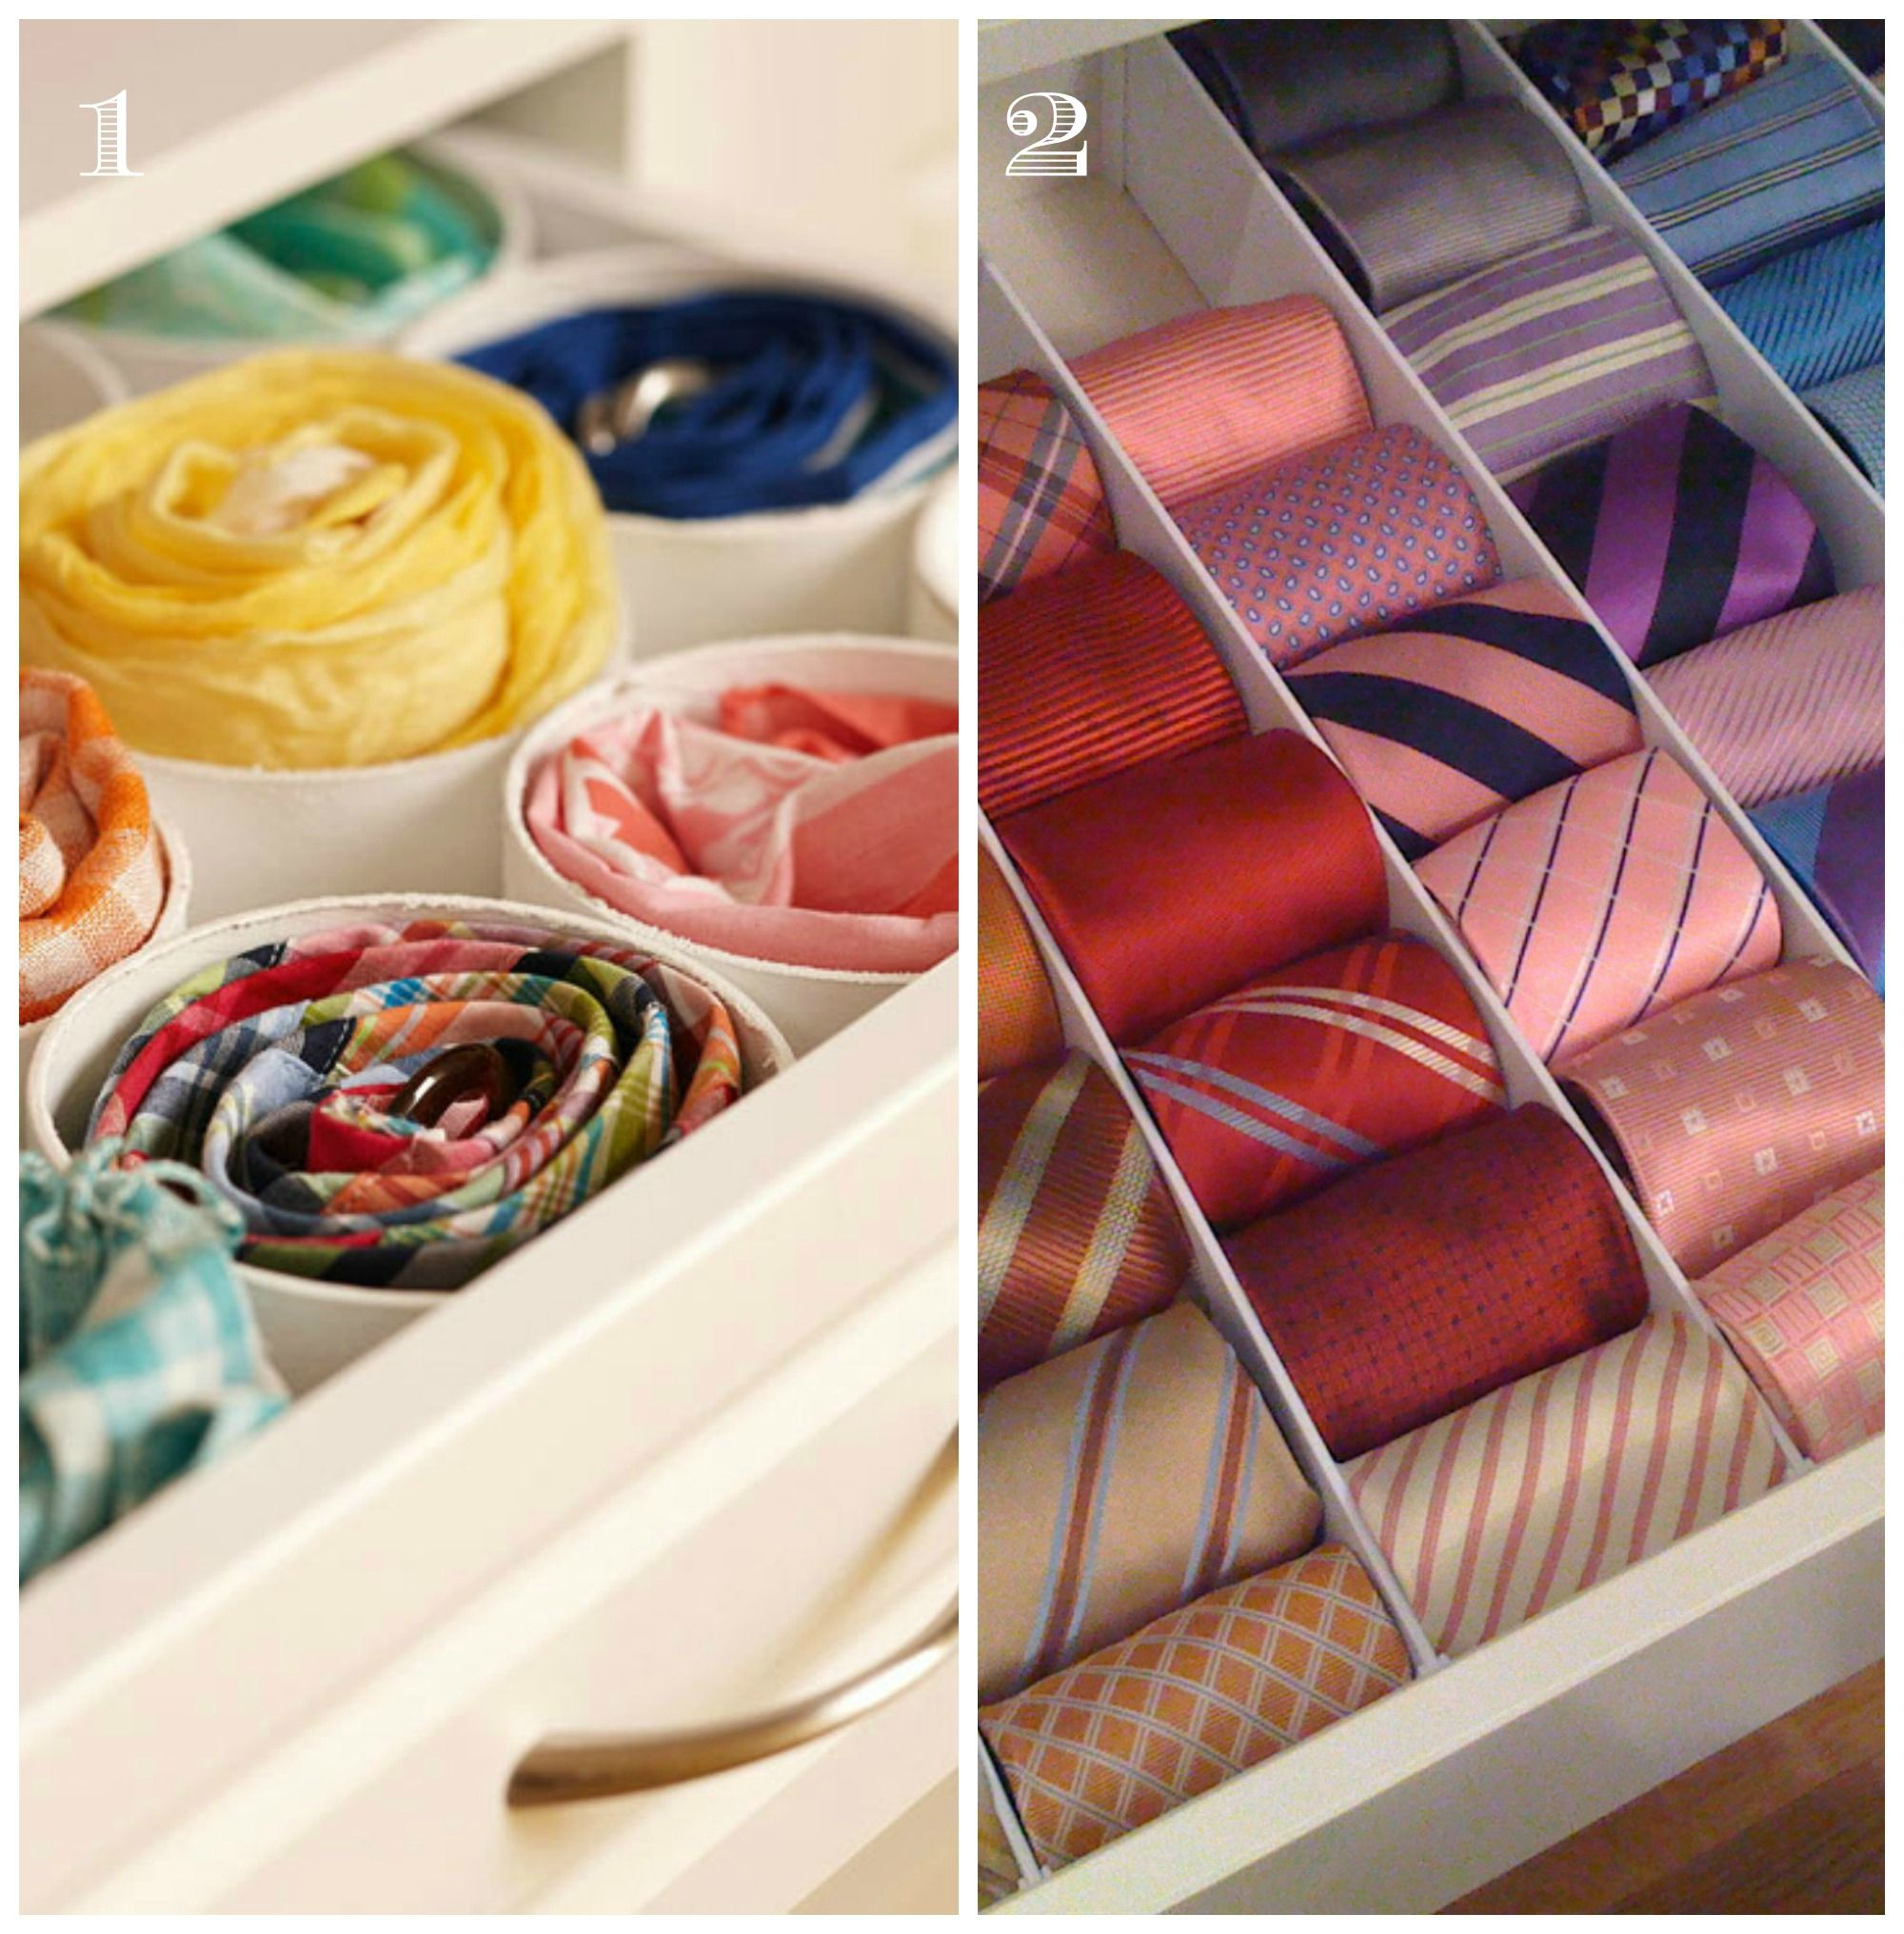 How To Organize Ties For Him Craftionary Tie Organization Organization Hacks Home Organization Hacks